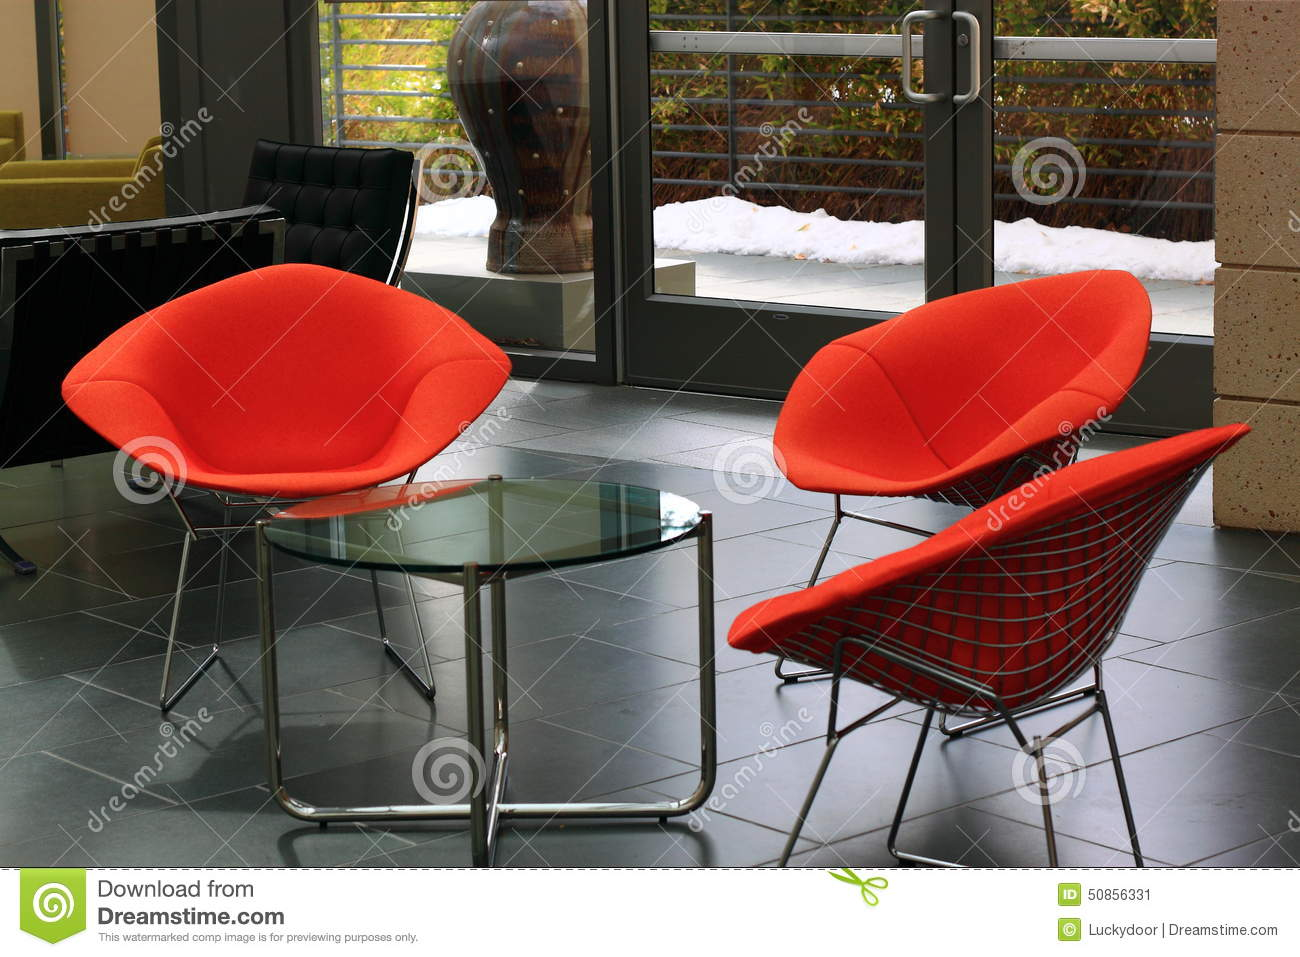 Comtemporary office furniture stock photo image 50856331 for Modern sitting chairs